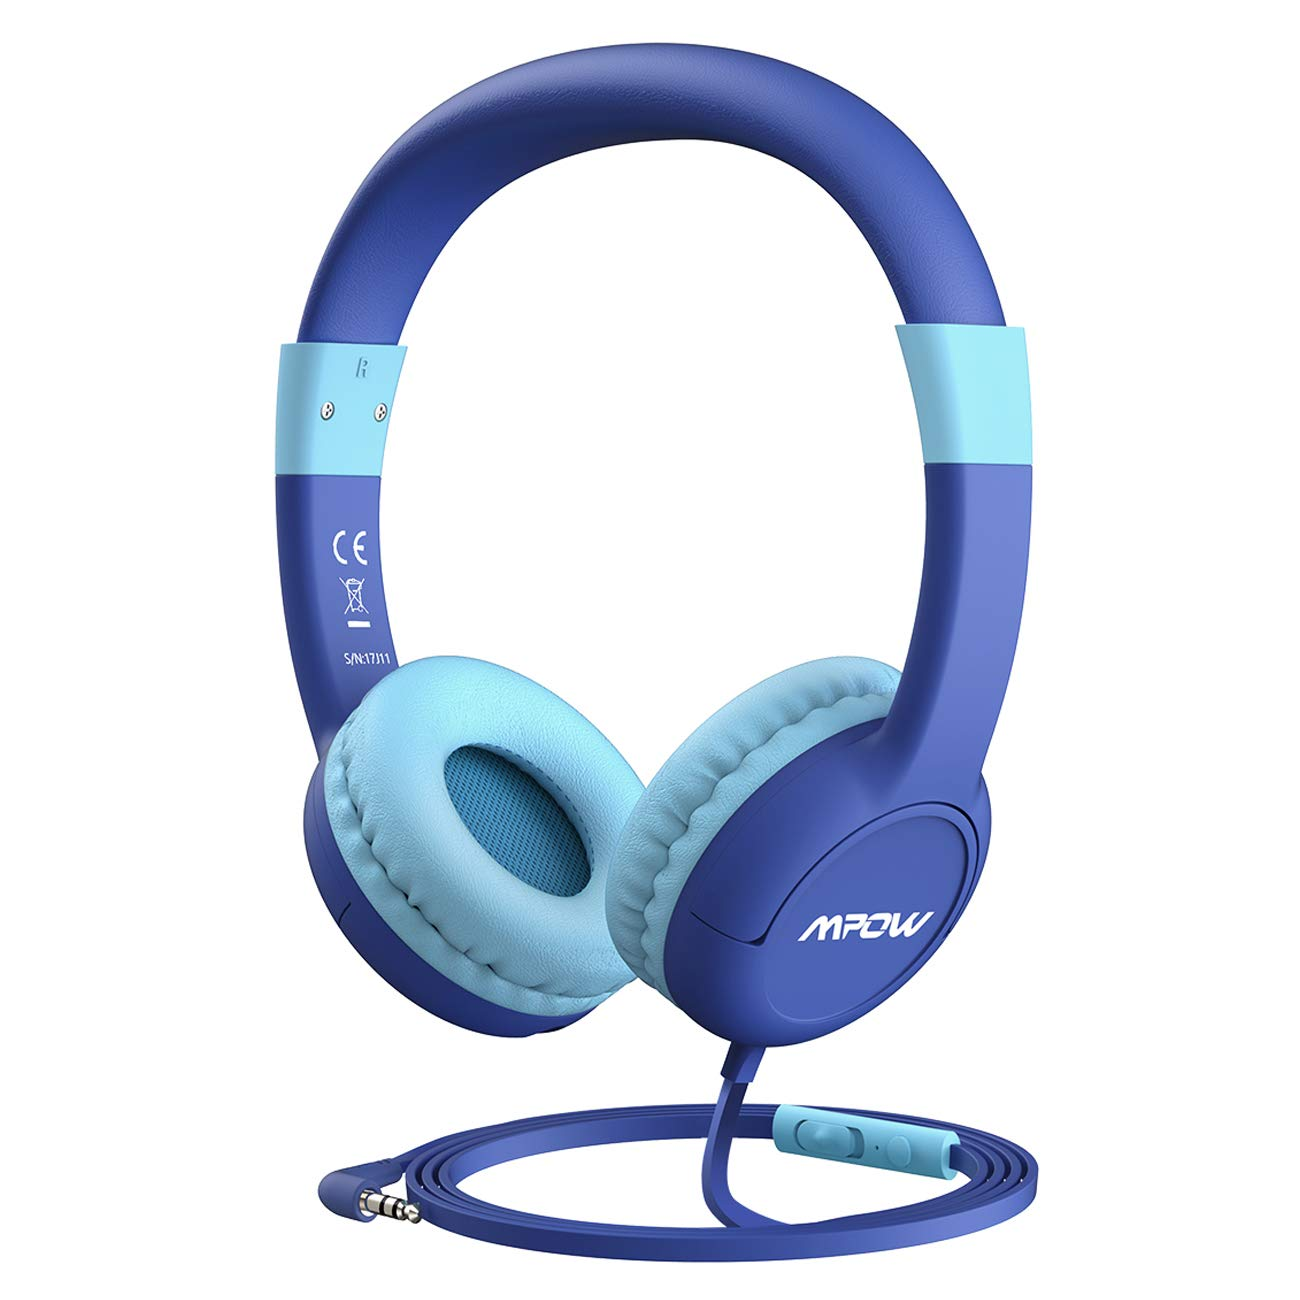 Mpow Kids Headphone with 85dB Volume Limited Hearing Protection & Volume and Mic Control, On-Ear Headphones with Music Sharing Function, Perfect Children Headphones for School, Home and Travel